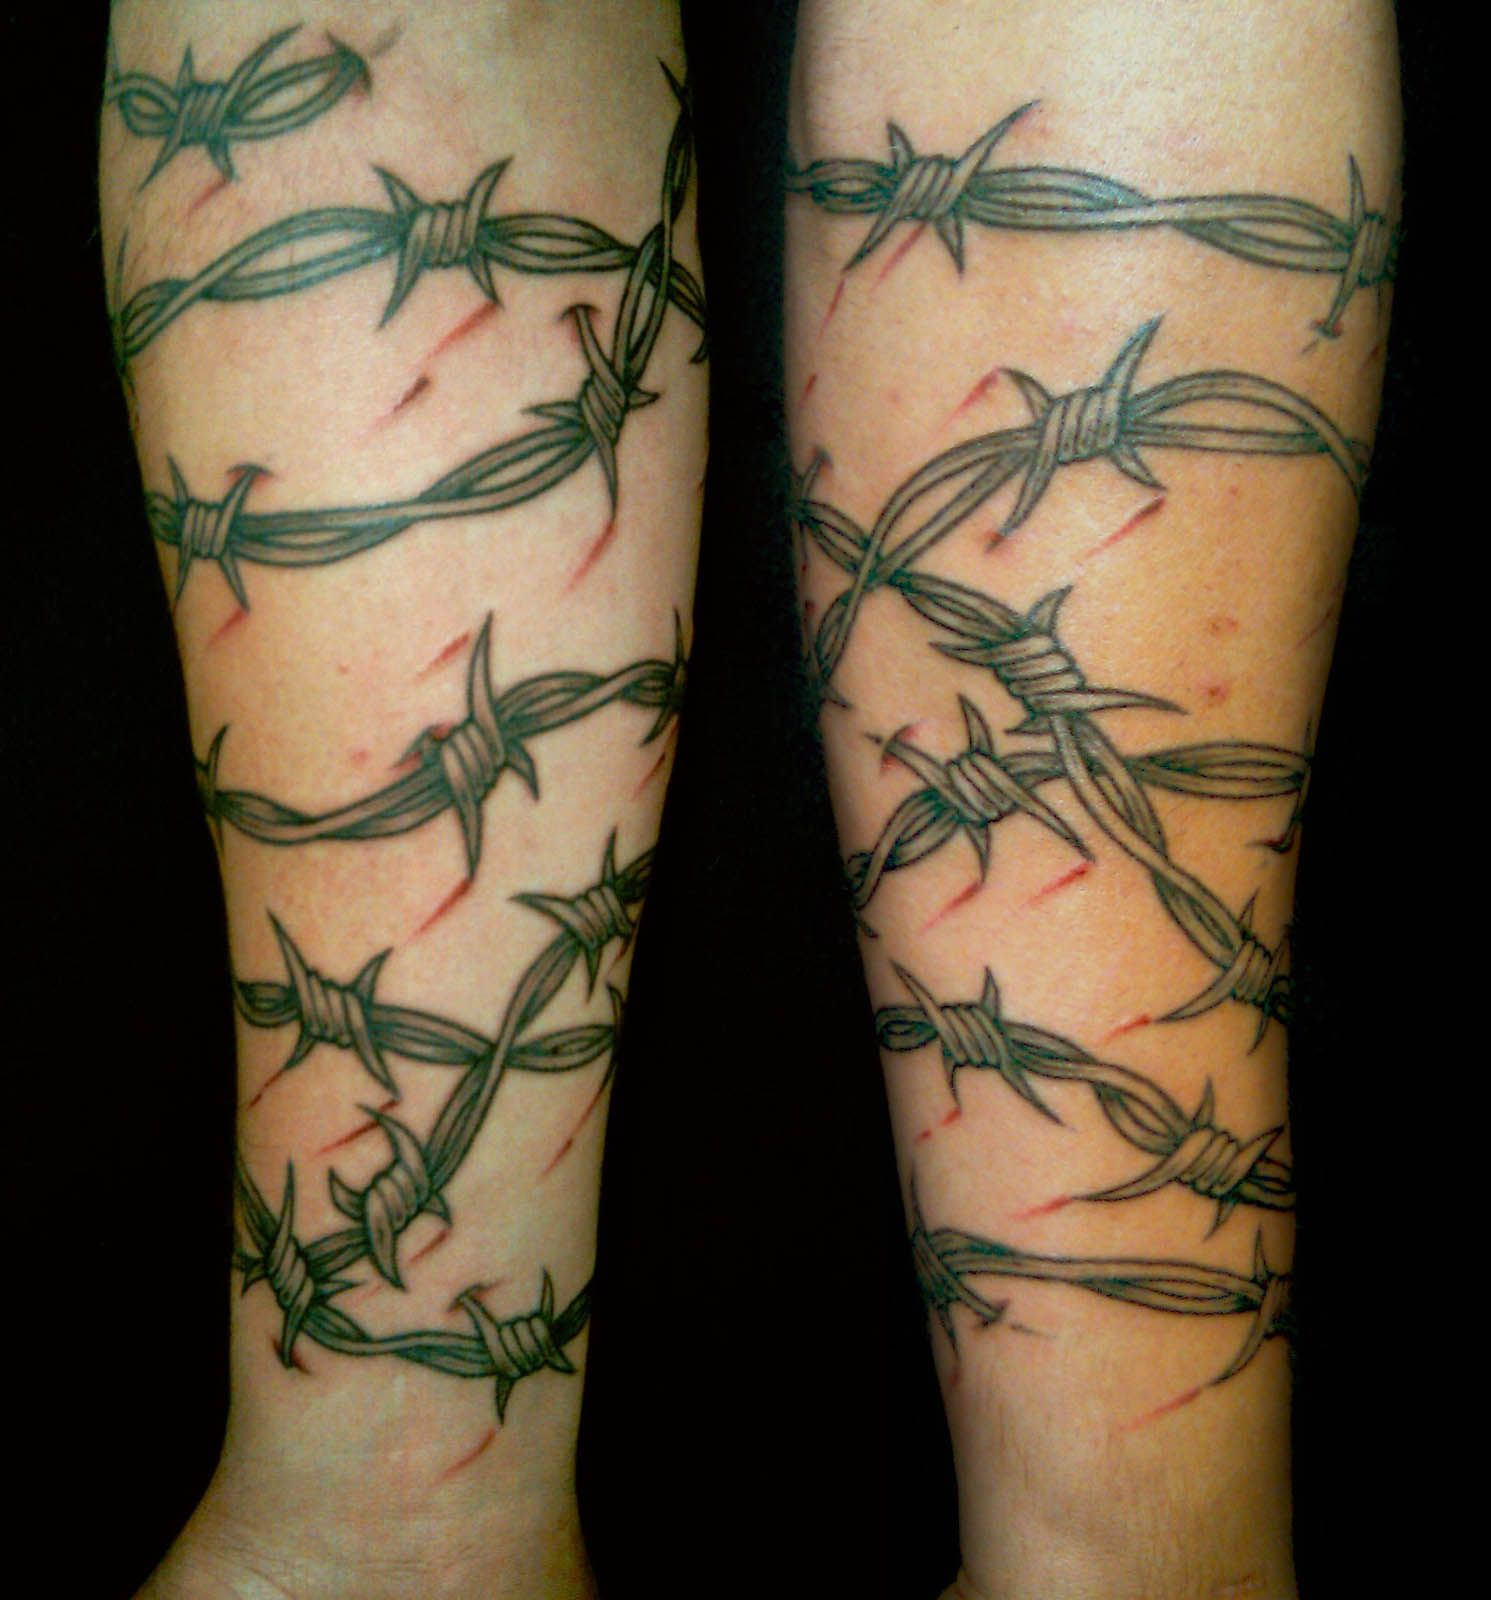 Tattoo Portfolio Black Grey And Red Barbed Wire Sleeve Barbed Wire inside sizing 1491 X 1600